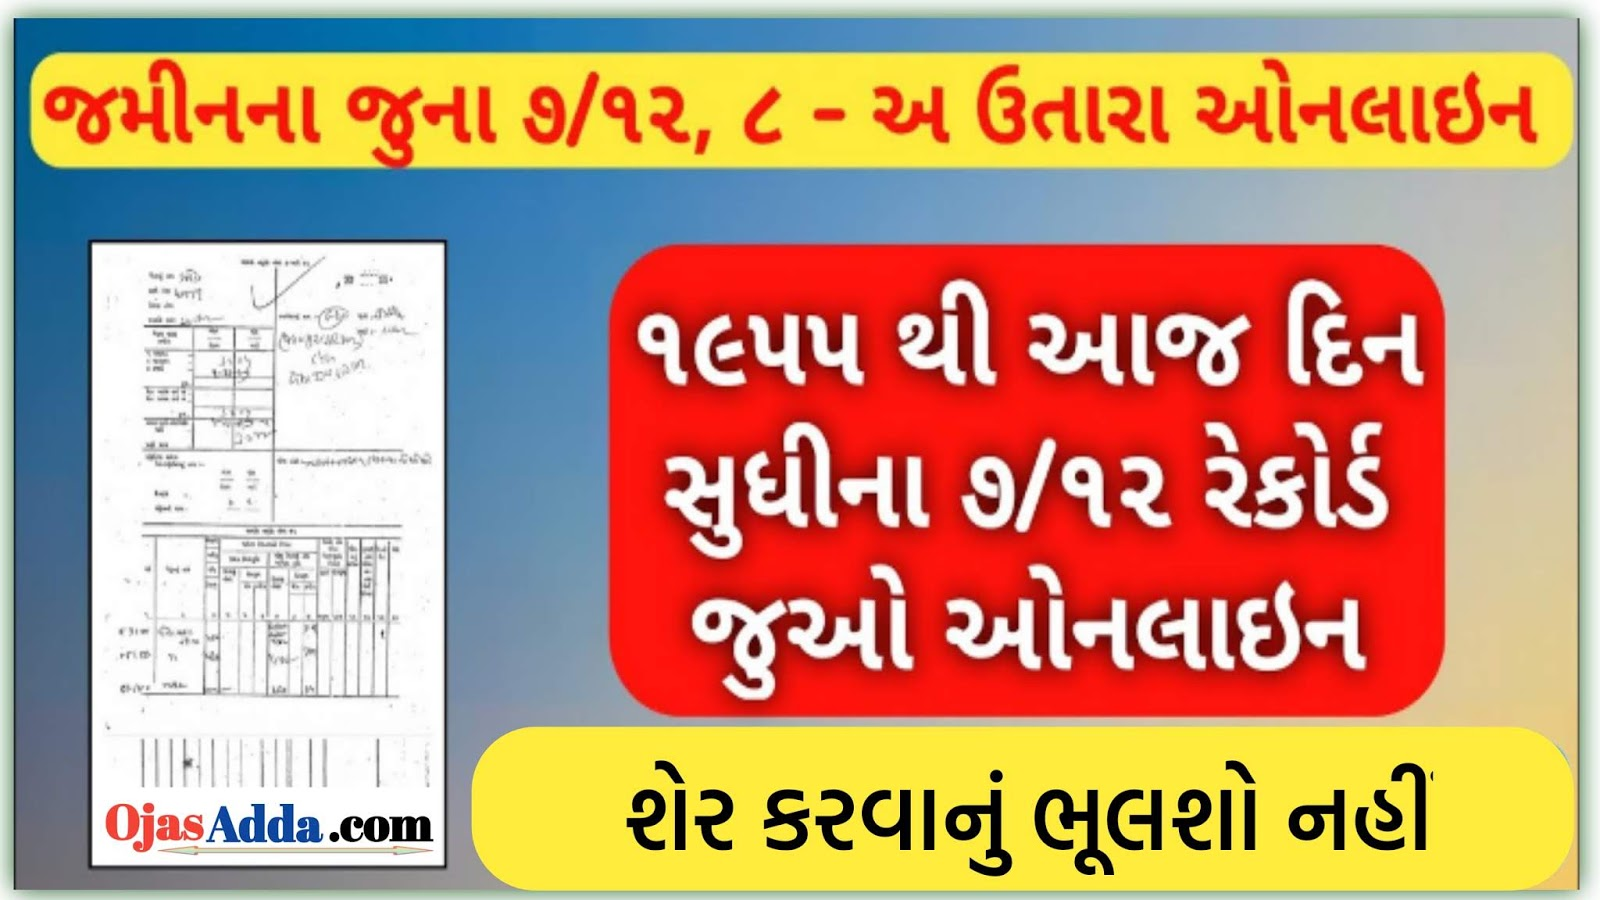 Any RoR Gujarat Land Record - Check Your Land Records